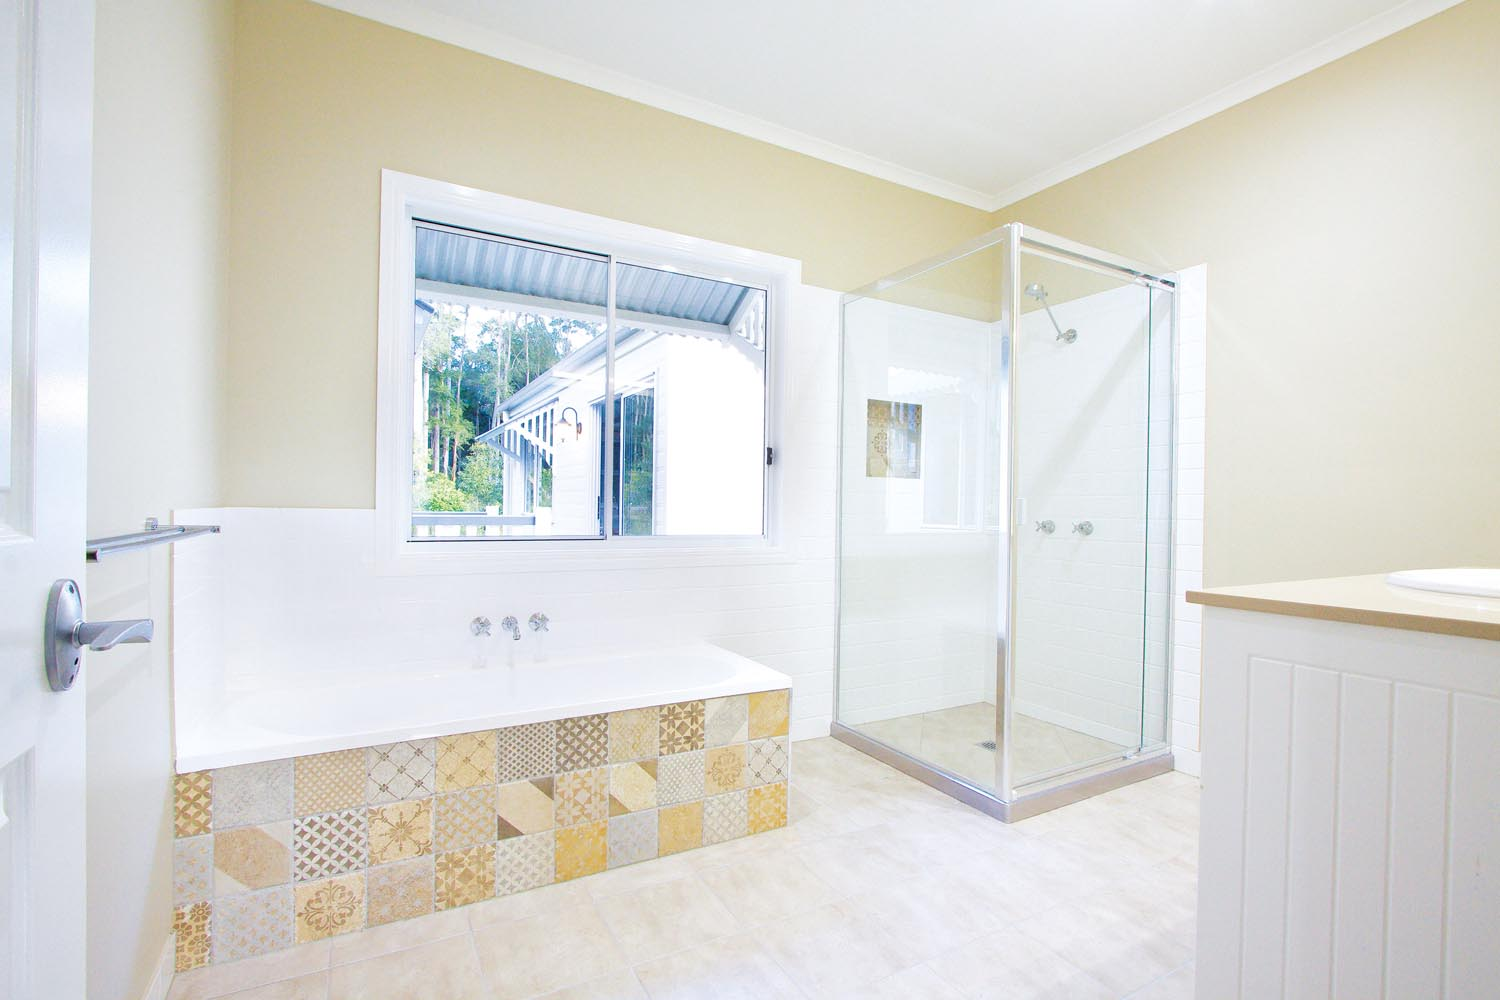 More for less: a classic Queenslander home - full view of bathroom